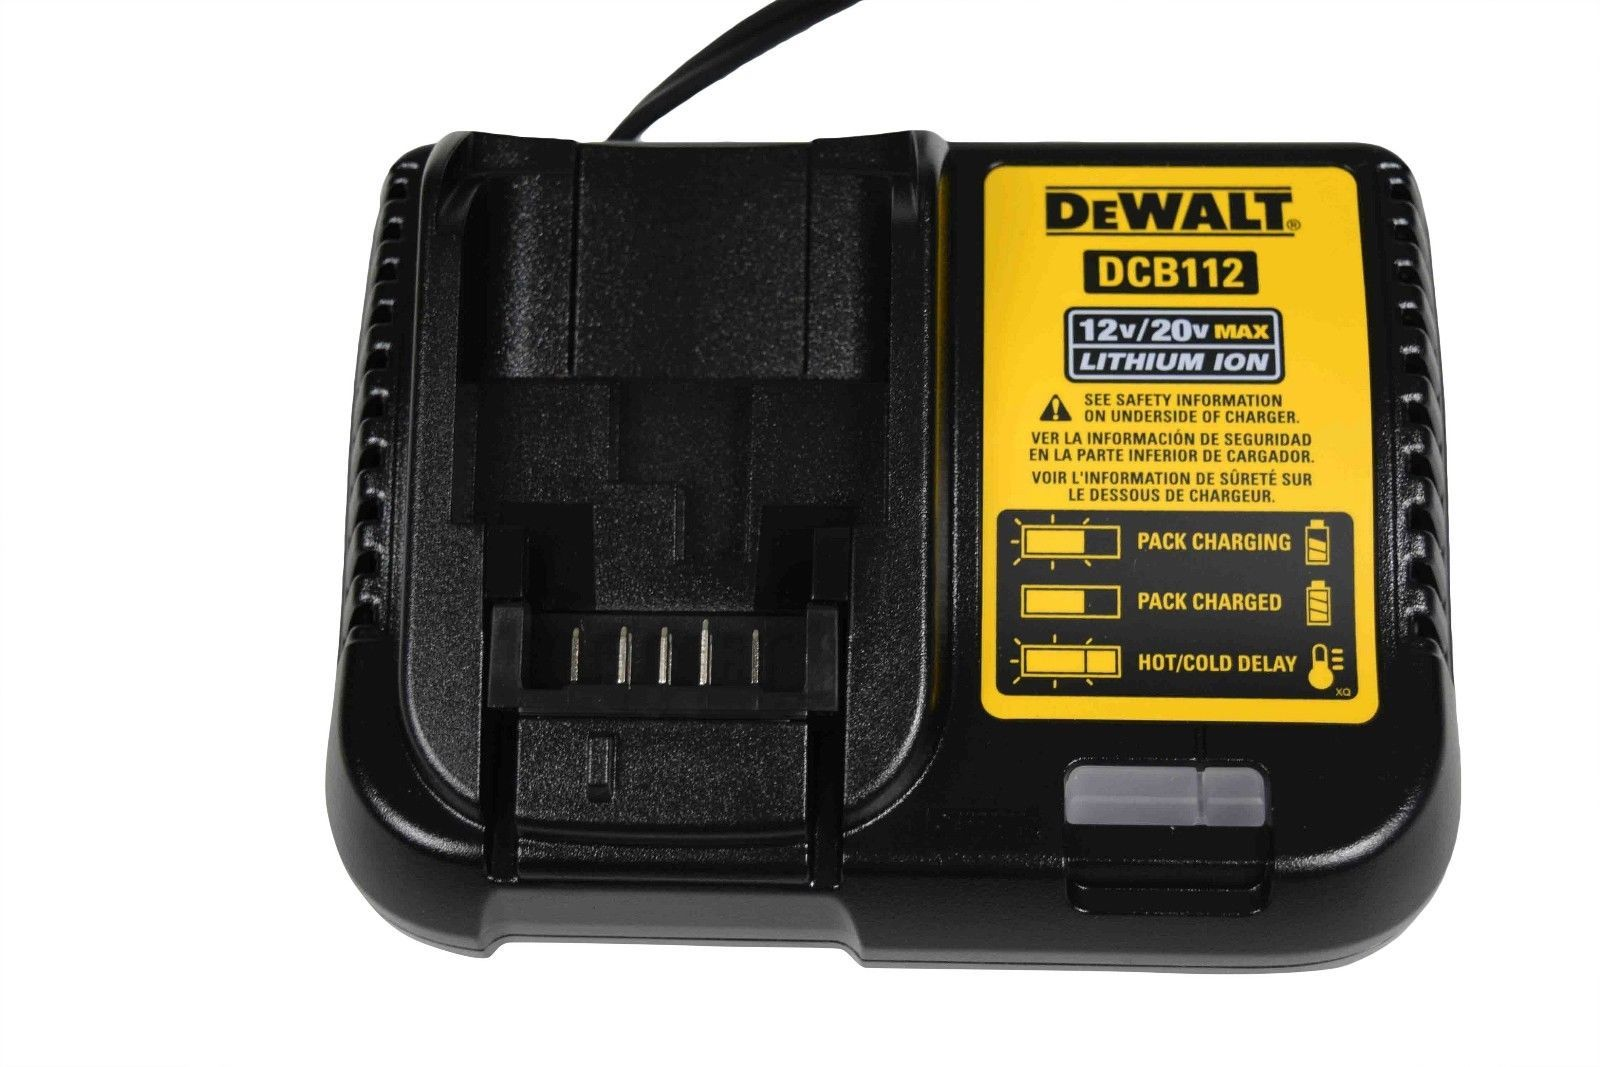 Dewalt-DCB112-NBX-20V-Lithium-Ion-Battery-Charger-image-2